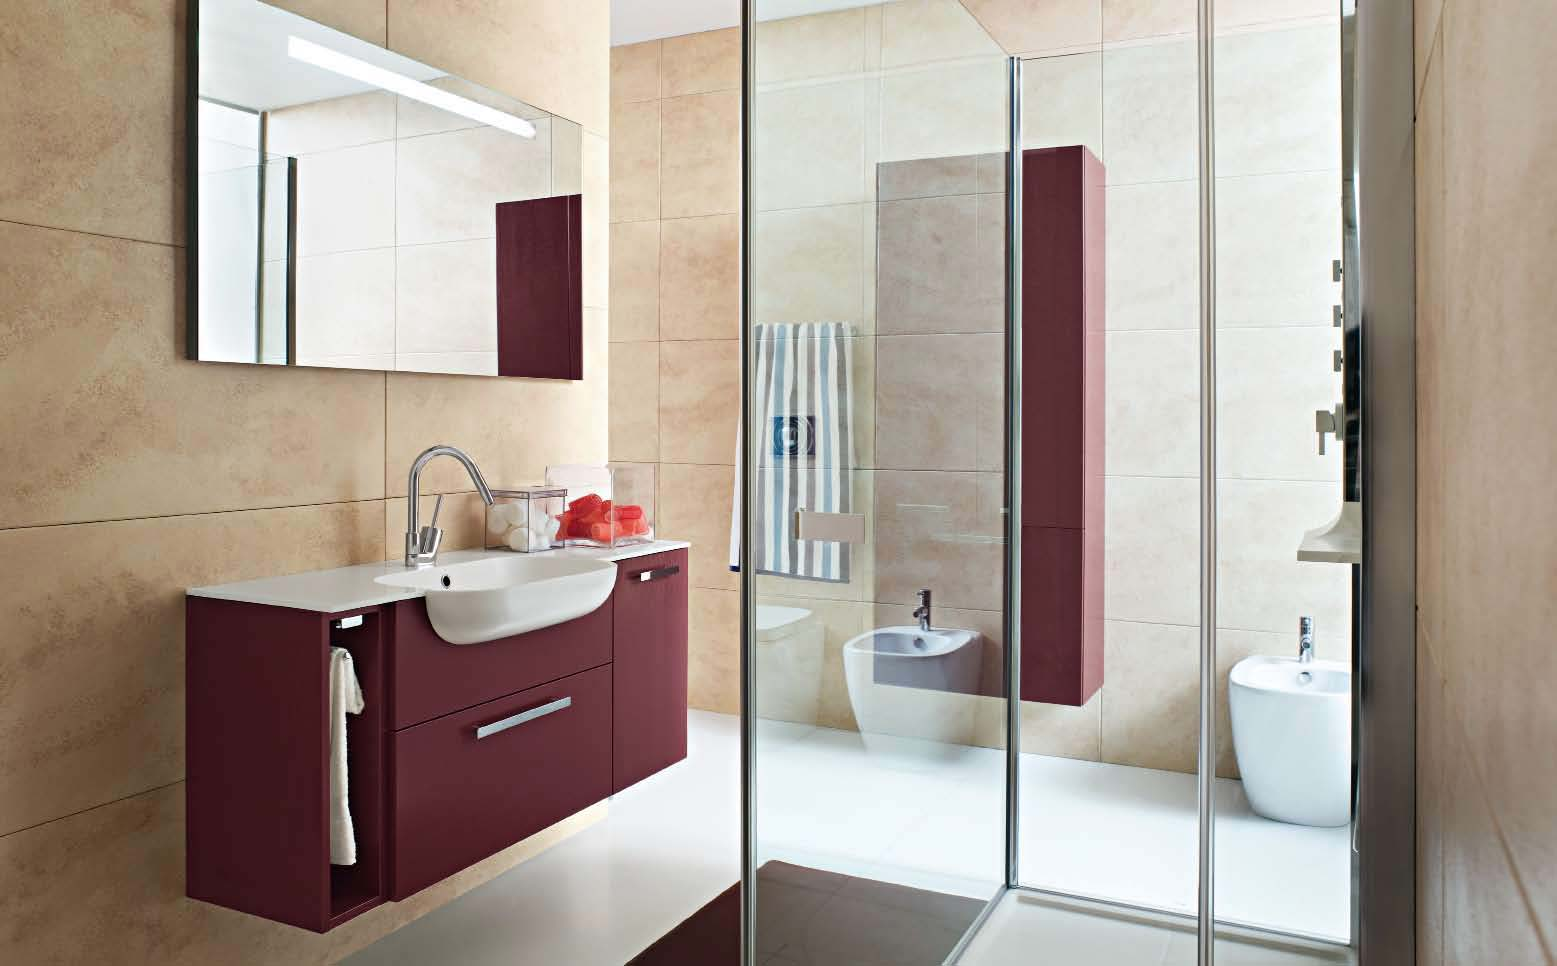 Ikea bath cabinet invades every bathroom with dignity homesfeed - Foto bagni ikea ...